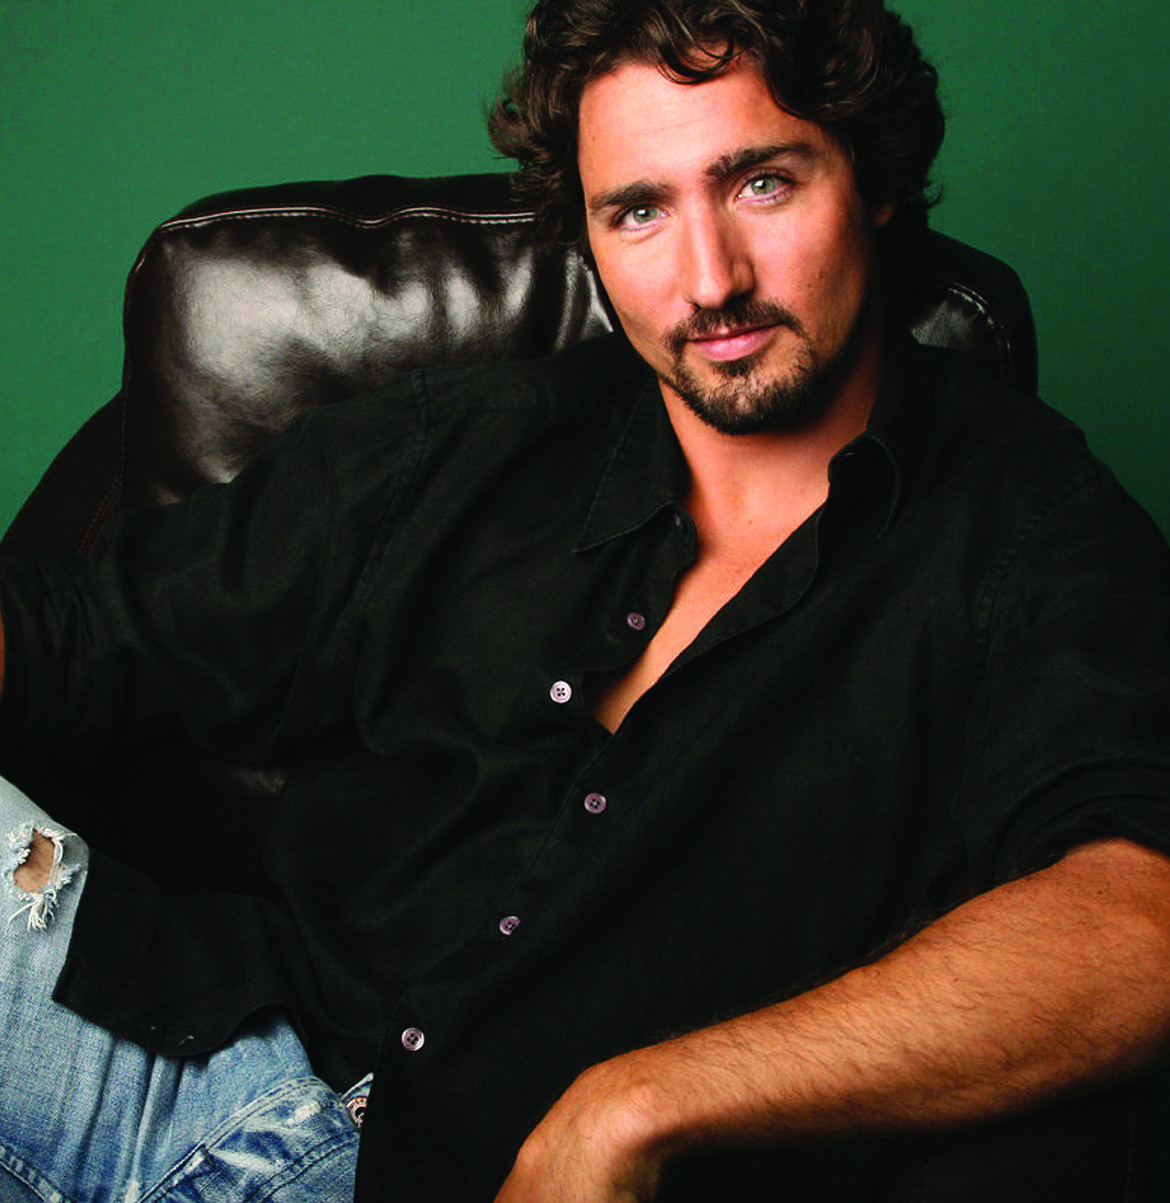 Justin Trudeau Prime Minister Of Canada Poses For A: Hunky Prime Minister Justin Trudeau Is The JFK Jr. Of